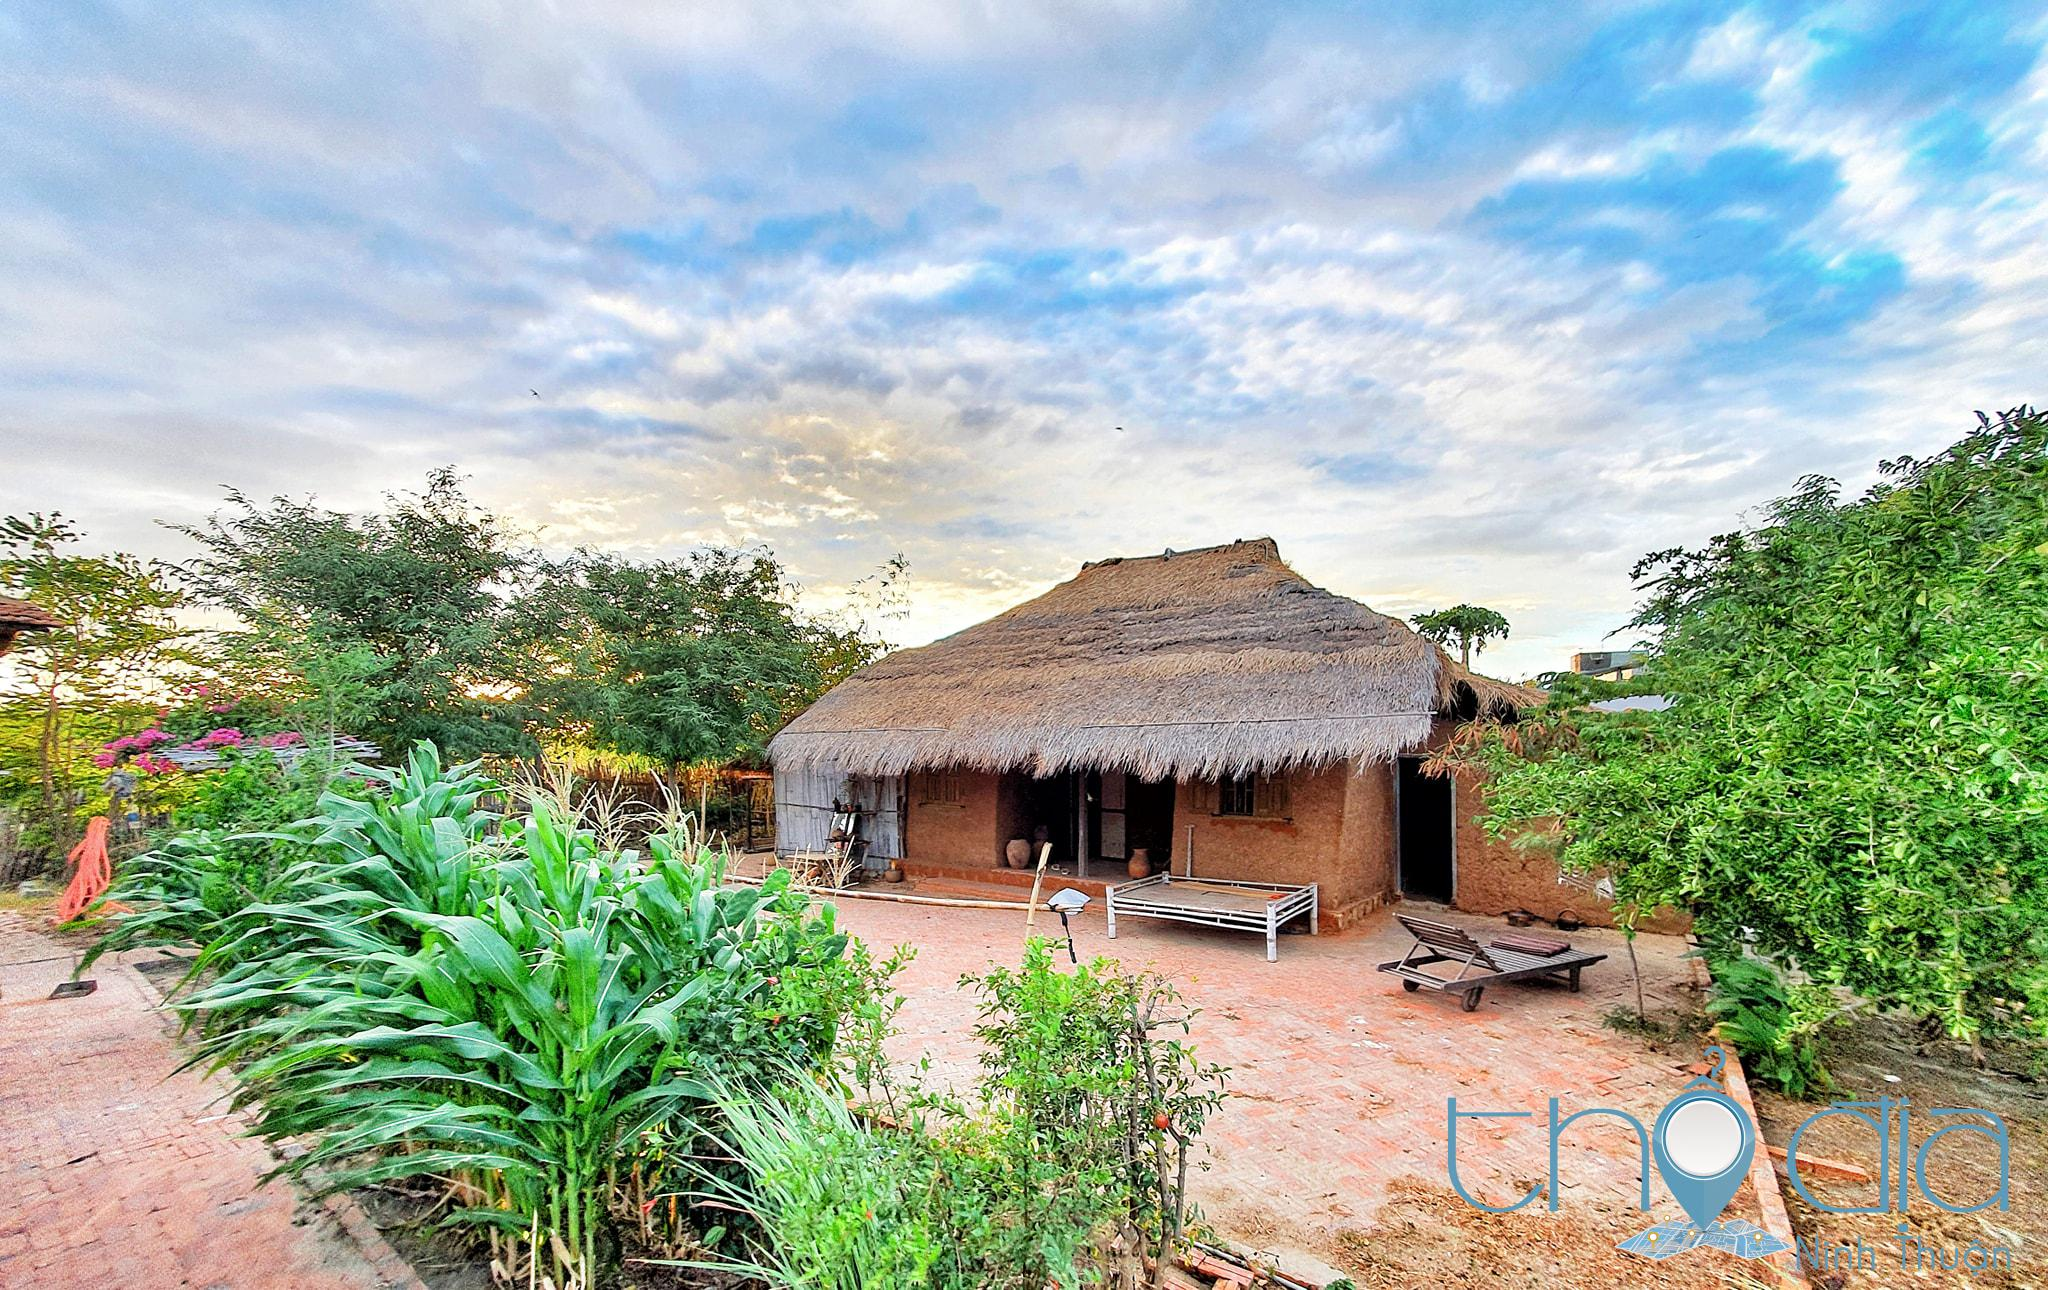 Inra Champa Cultures Homestay